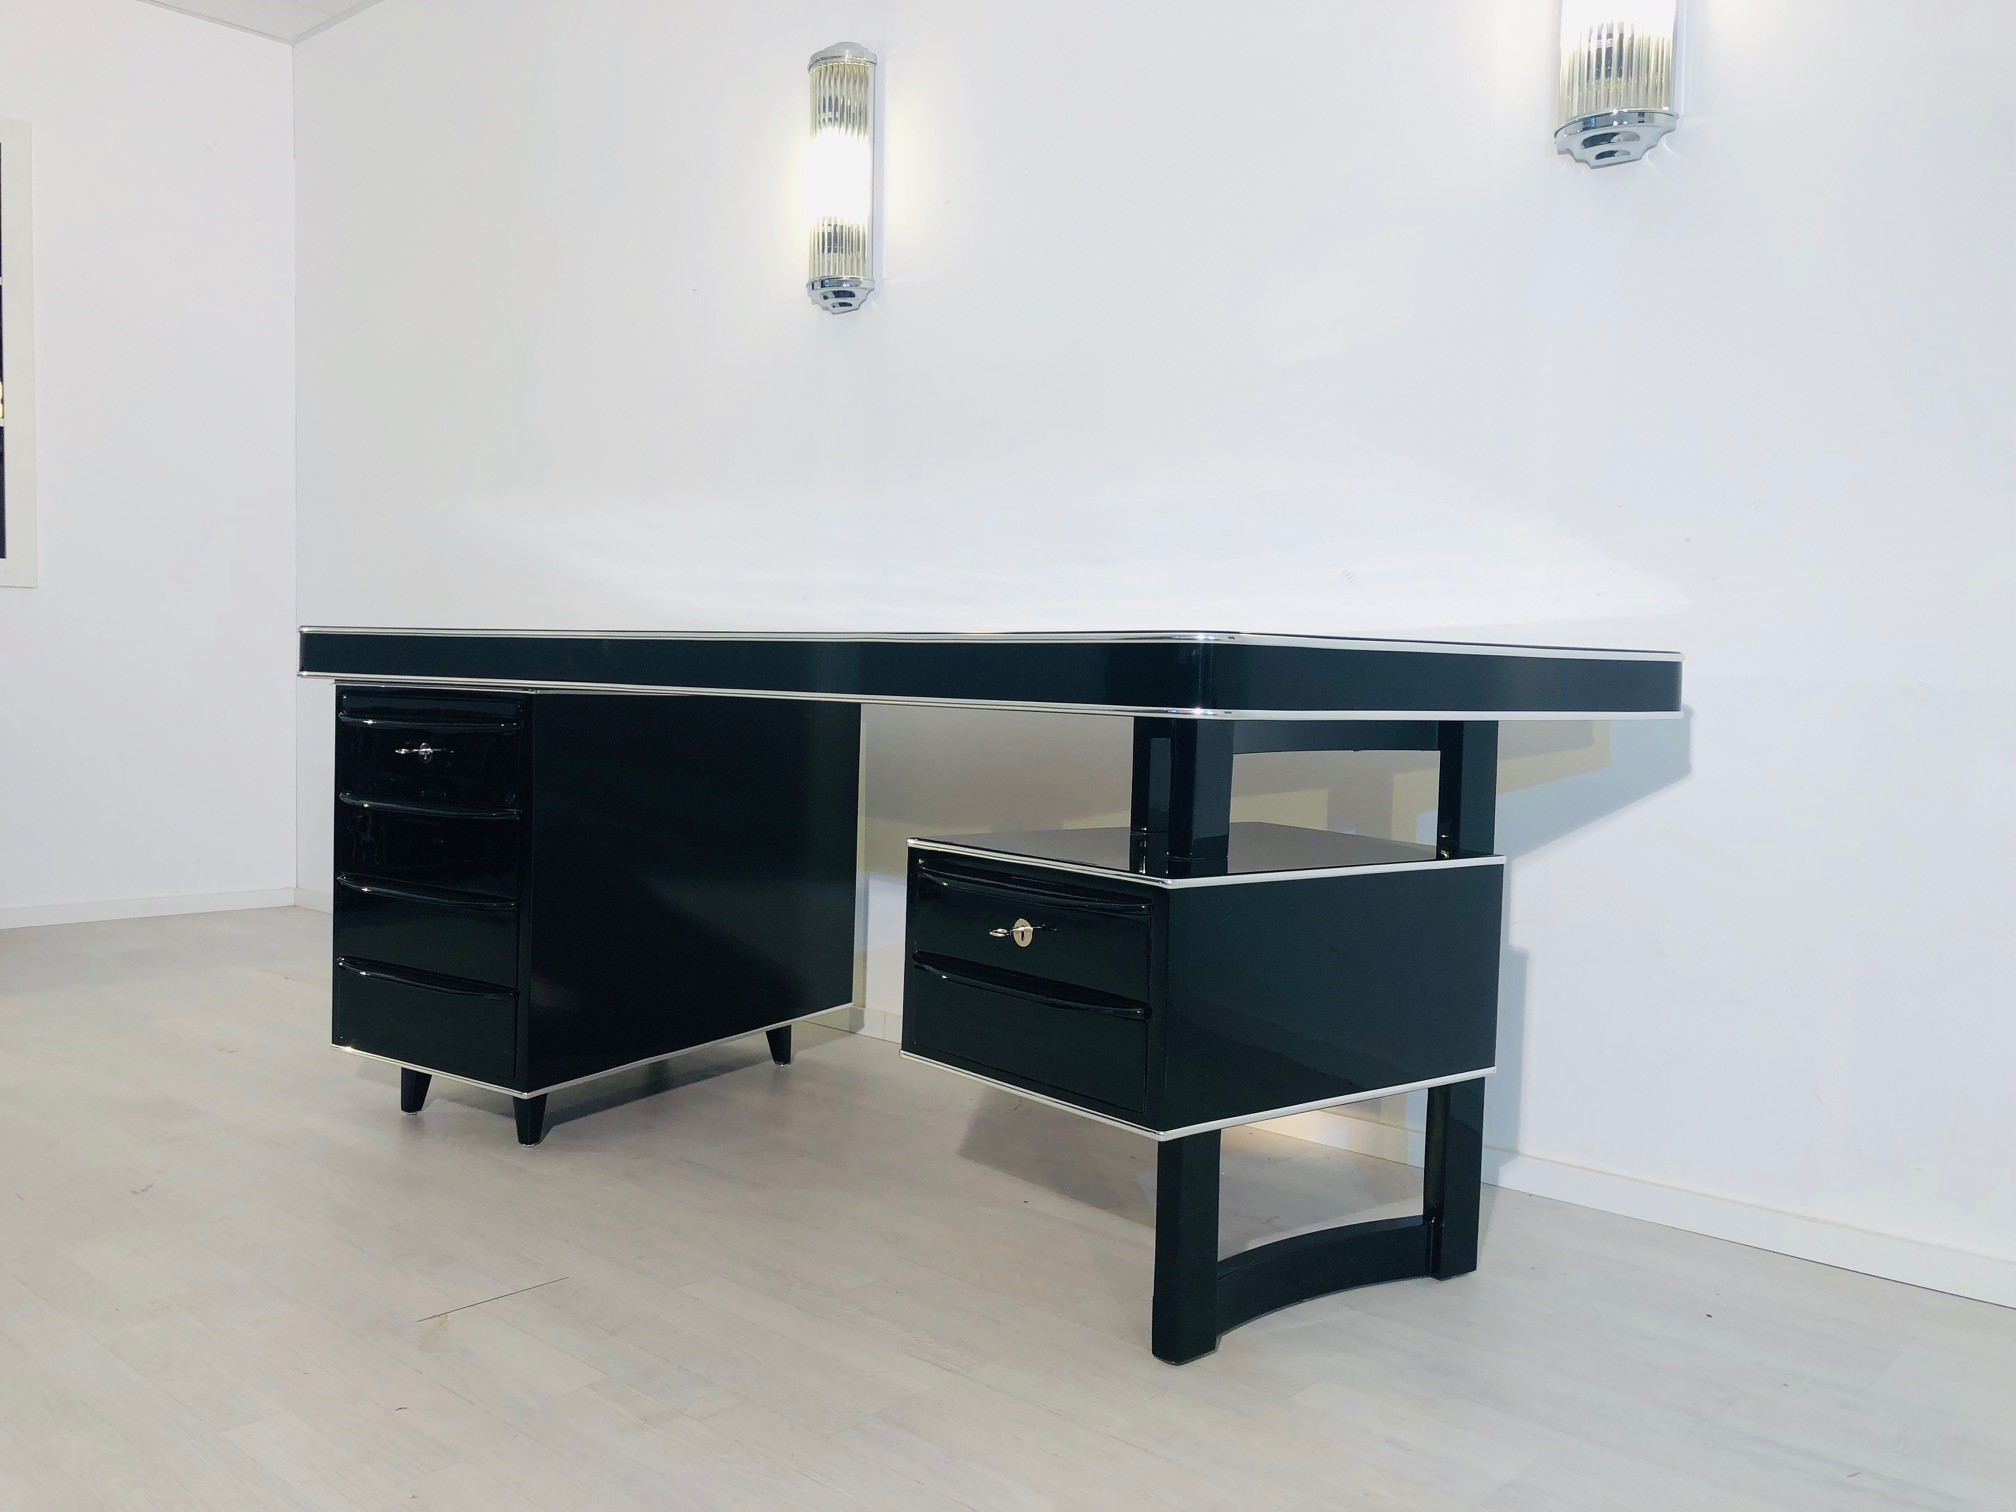 Schreibtisch Design Sale 1950s Bauhaus Desk In High Gloss Black